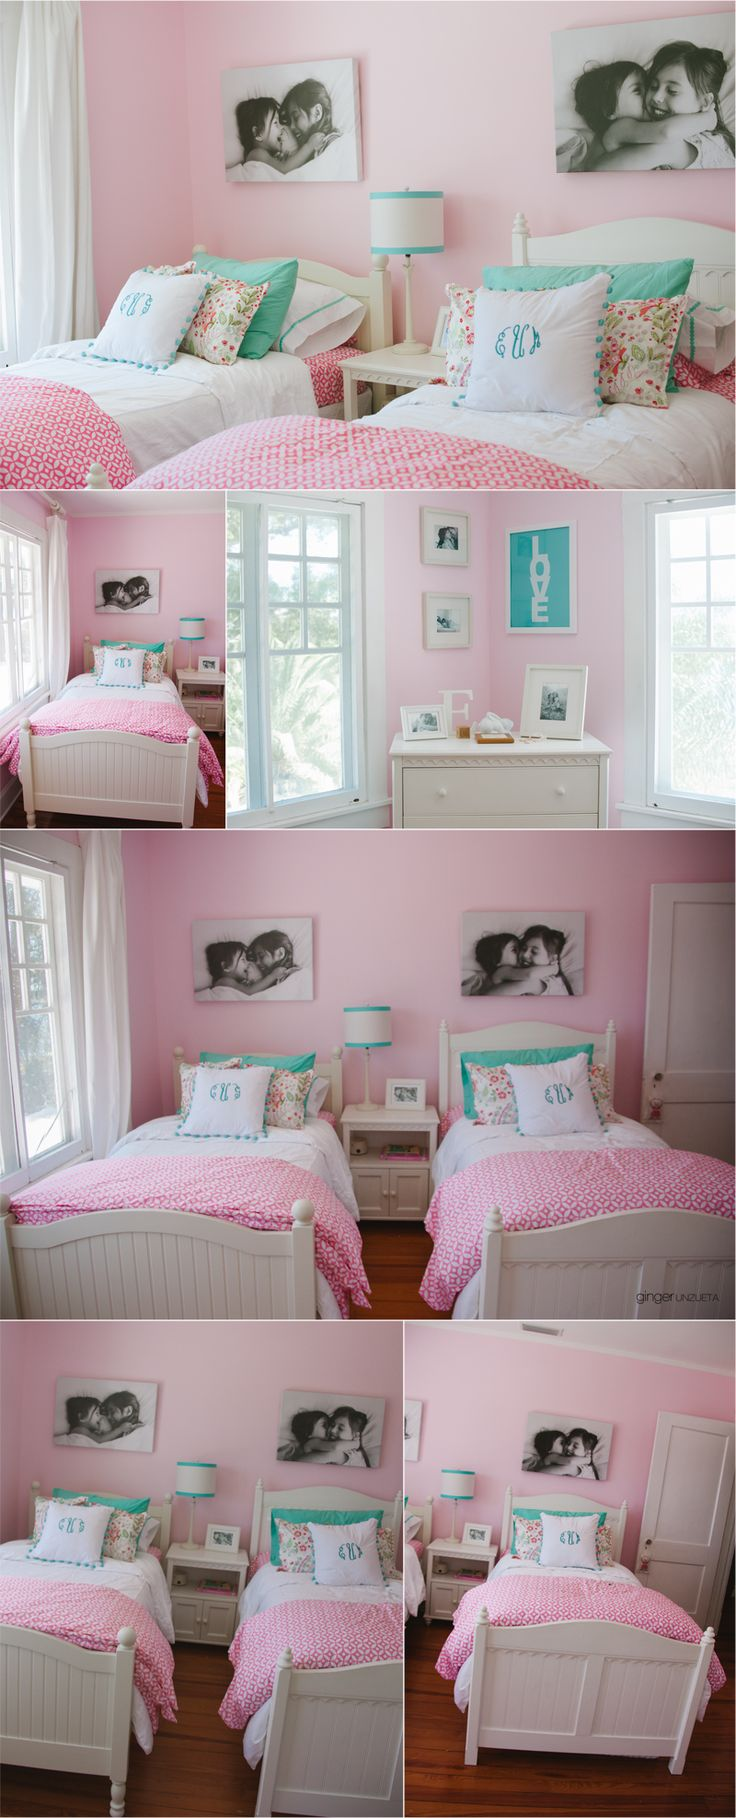 Interior design teenage girl bedroom colors - Girl colors for bedrooms ...